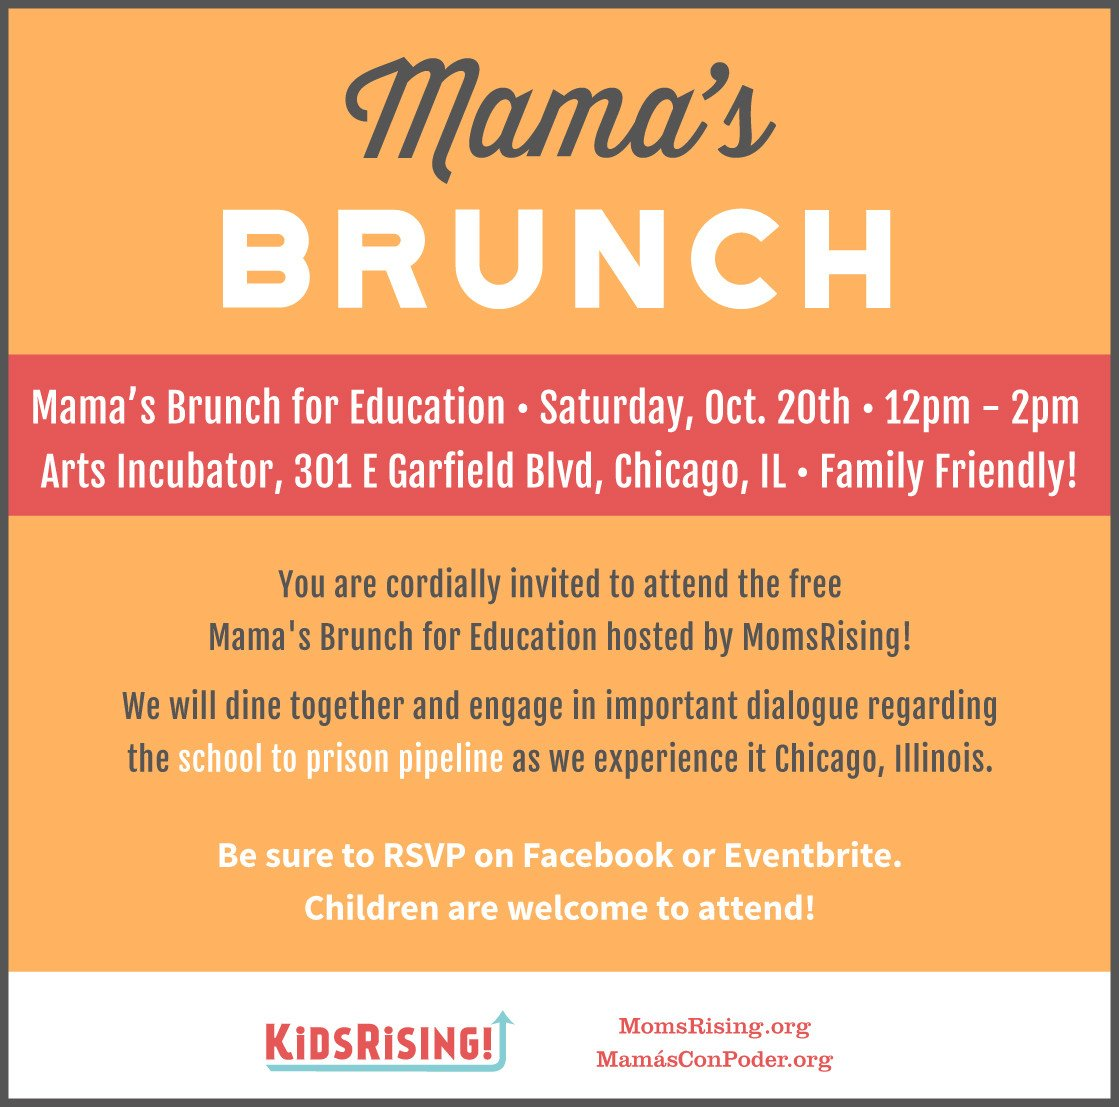 📍Chicago, IL! Join our Mama's Brunch for Education hosted by us and @Kids_Rising at the @artspubliclife. We will eat, laugh and discuss ways we can dismantle the #schooltoprisonpipeline on Sat, Oct.20th, 2018 at 12PM. https://t.co/Dkok1jBjA4